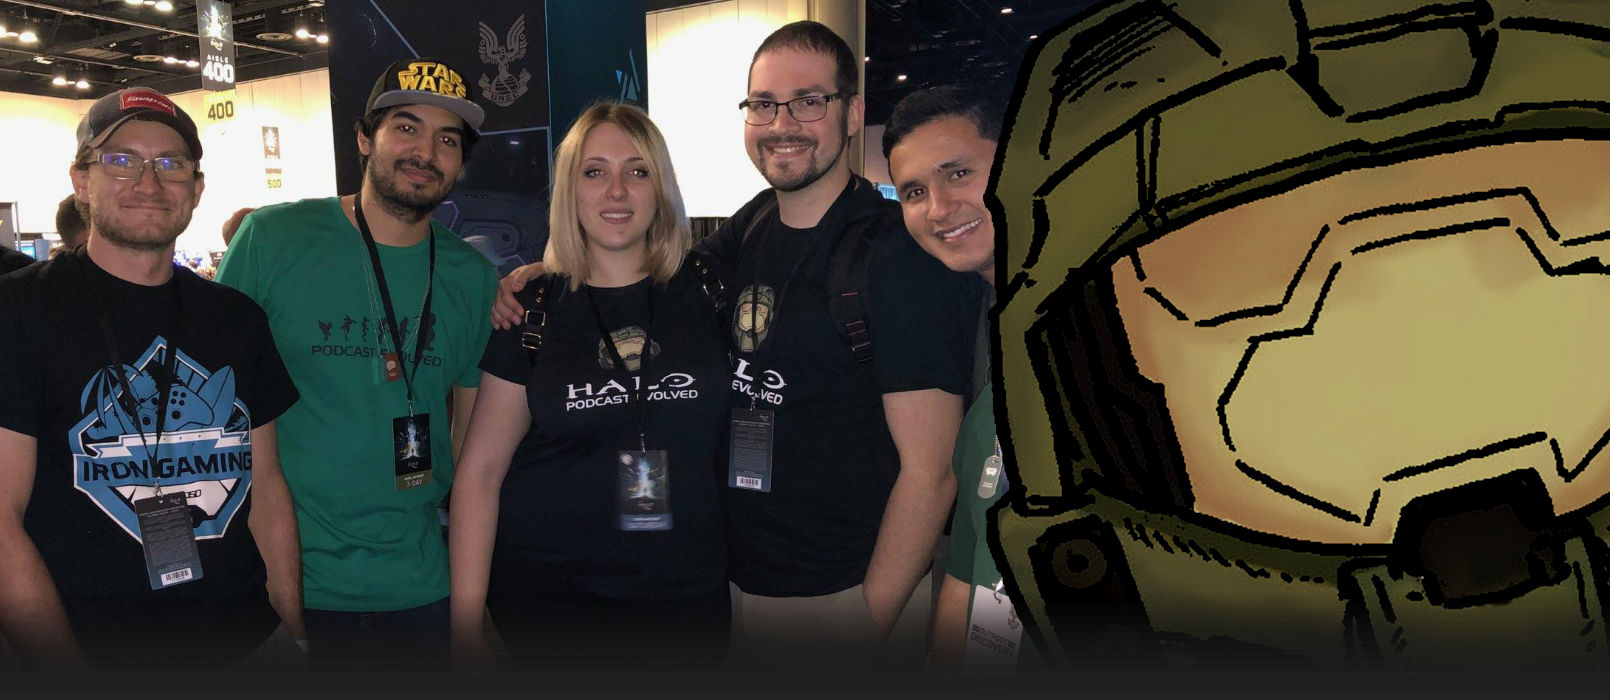 Evolved Visits • 2017 - Community showcase of member meet-ups, Halo events, and tournaments